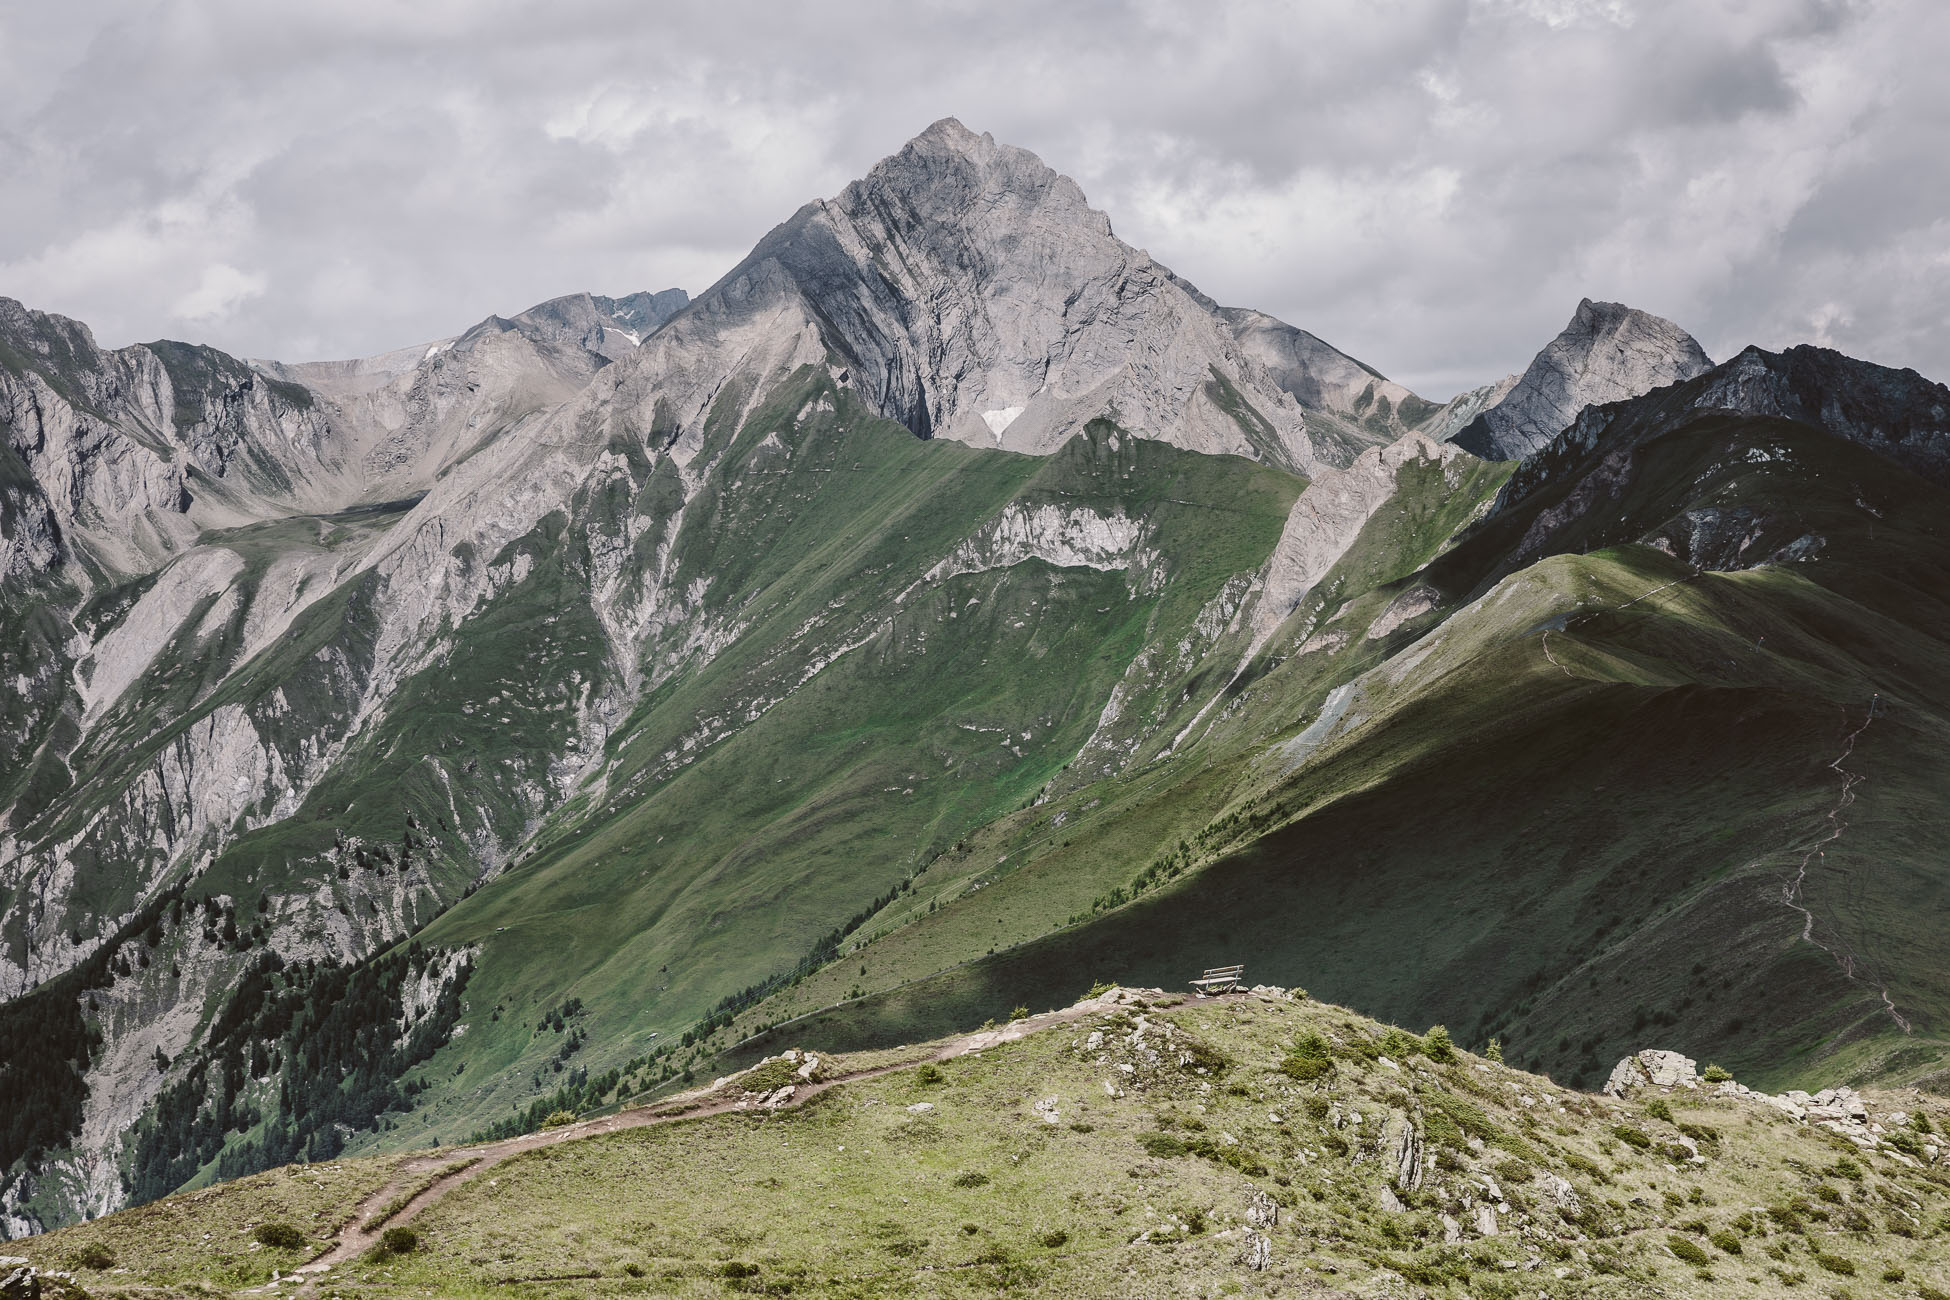 Mountain views at National Park Hohe Tauern